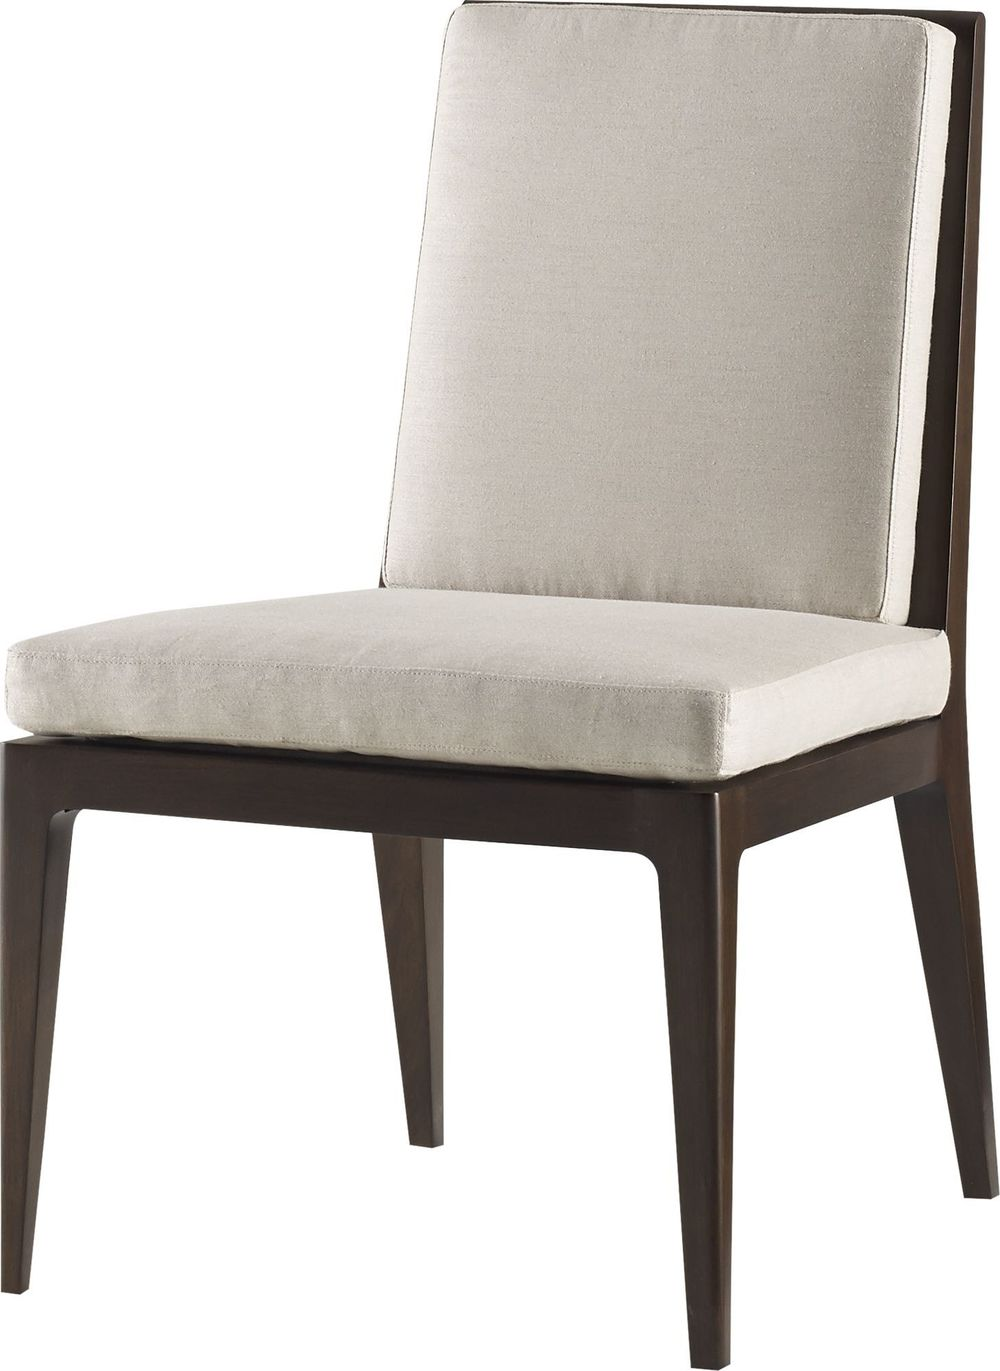 Baker Furniture - Carmel Caned Dining Side Chair